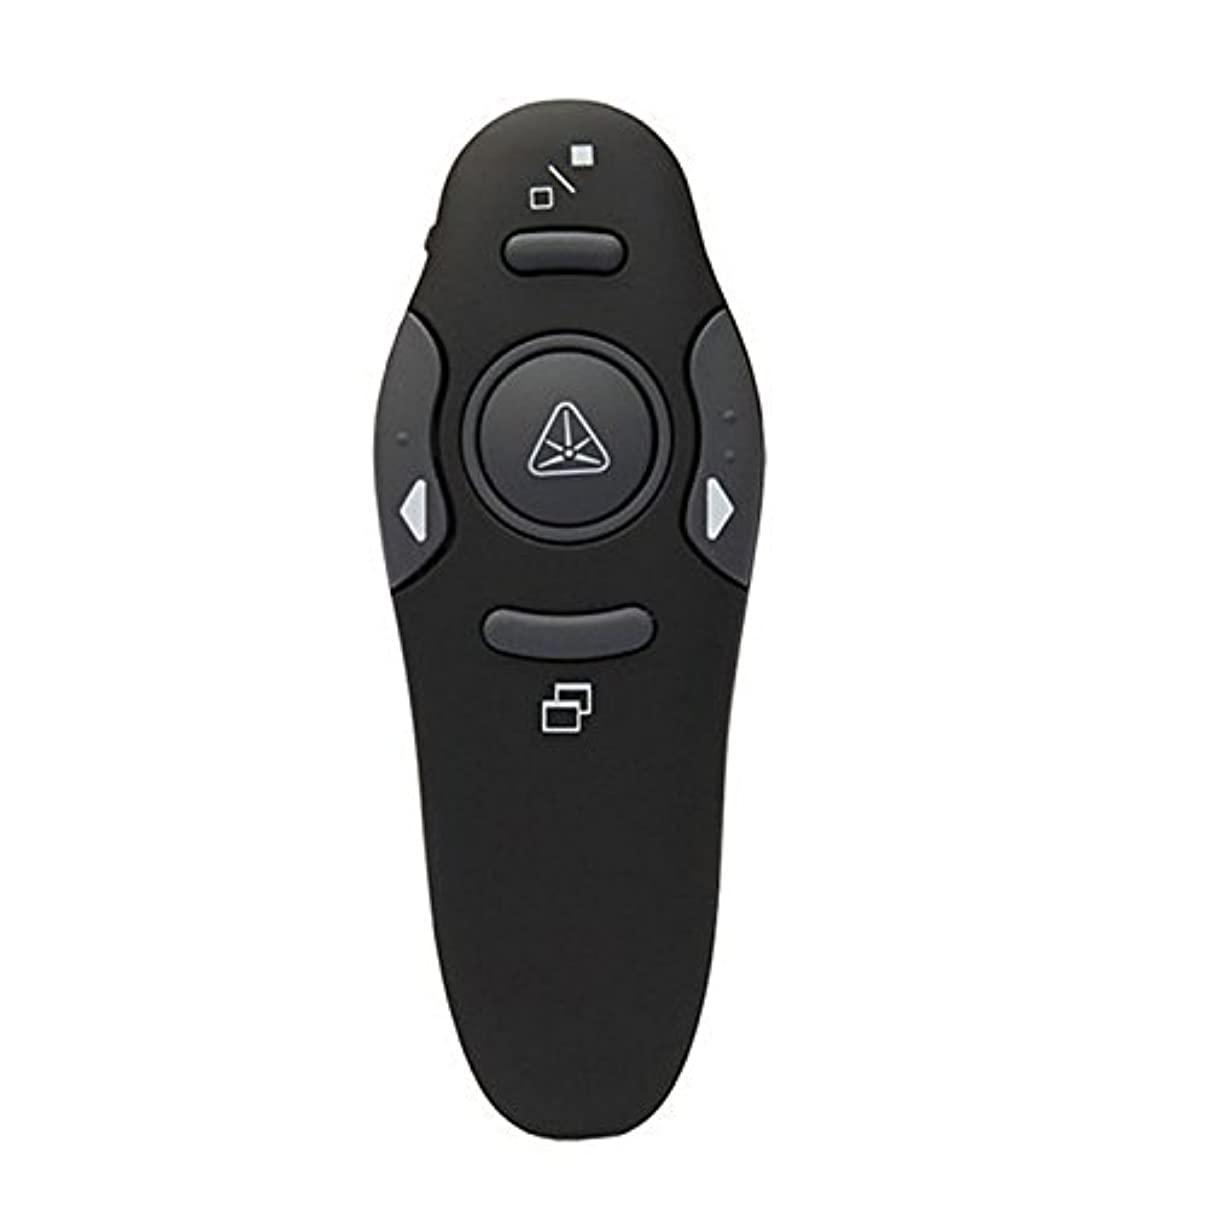 Onewell 2.4GHz Wireless Presenter USB Remote Control Presentation Mouse Laser Pointe H52